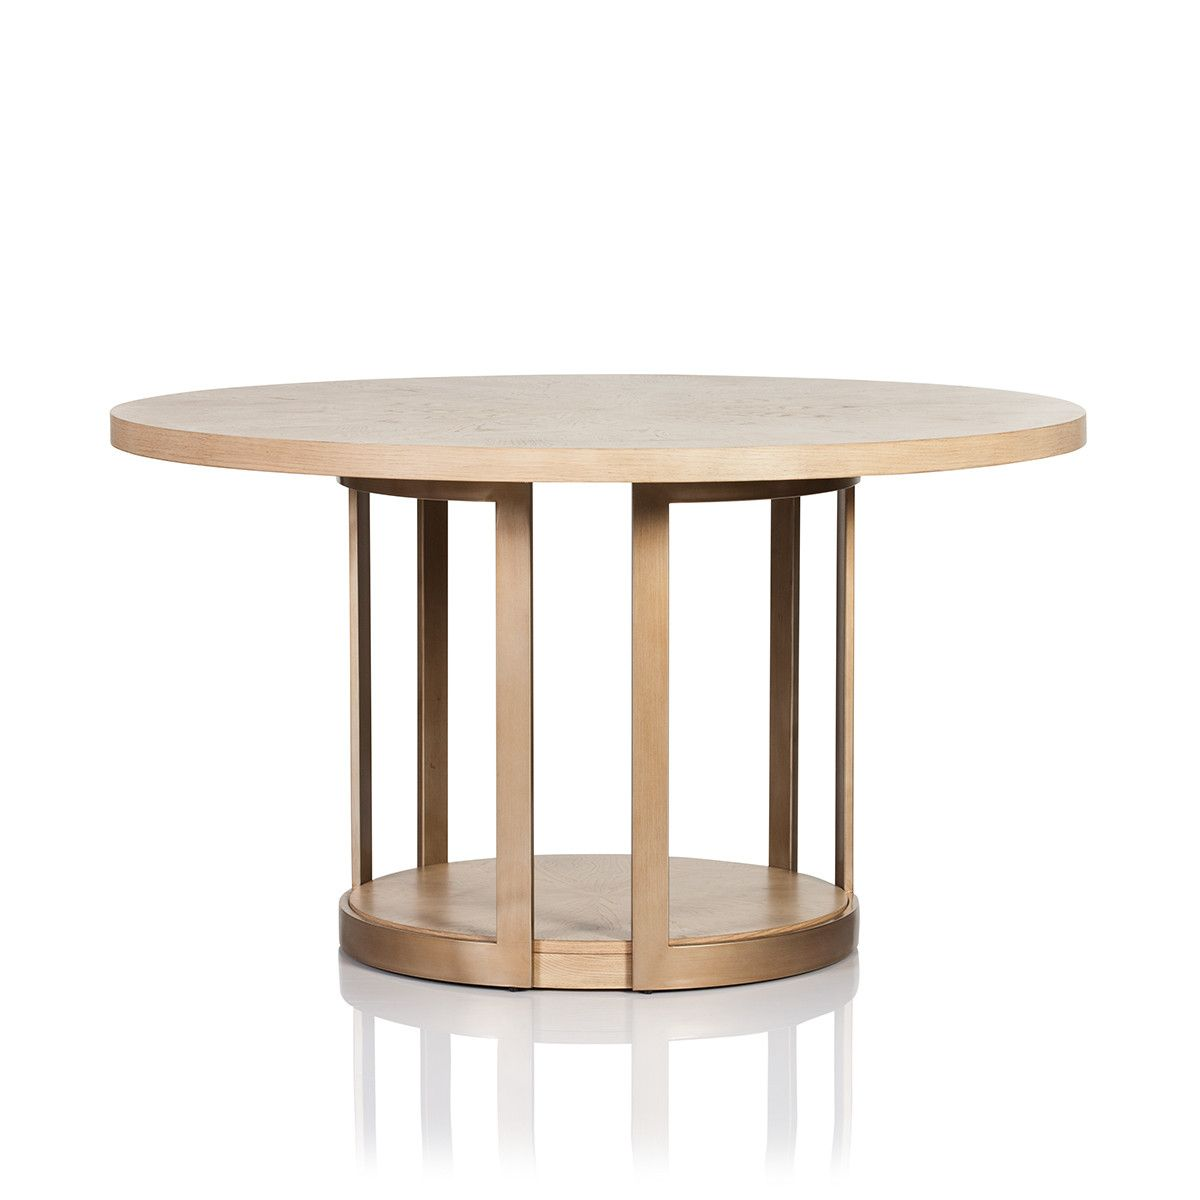 Clean lines endless style the classic dining table is